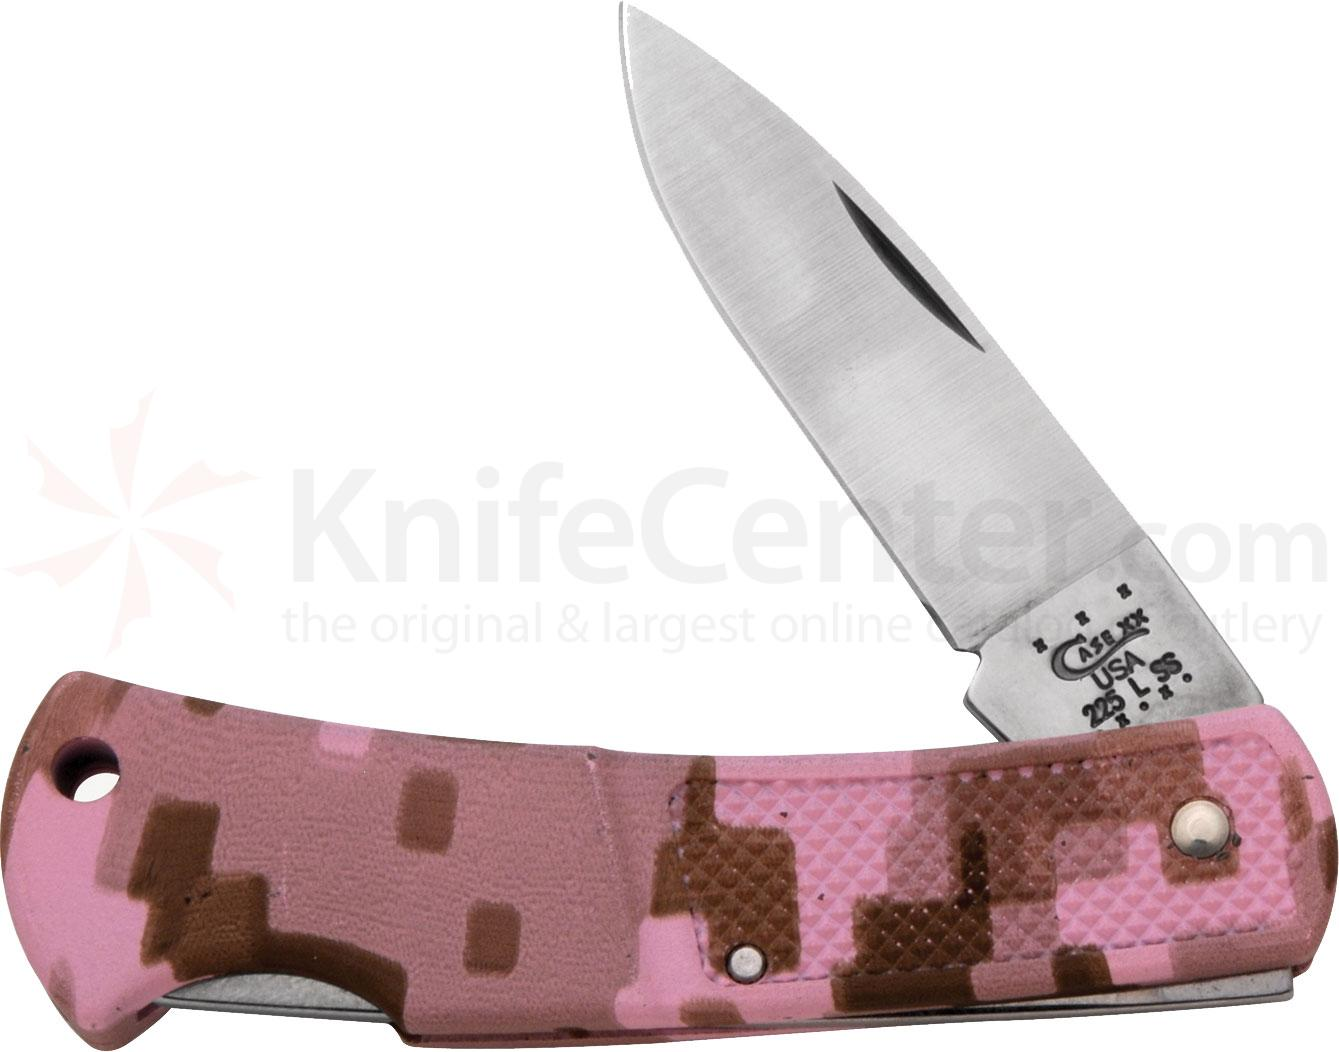 Case Lightweight Pink Camo Zytel Lockback 3 inch Closed (LT225L SS)